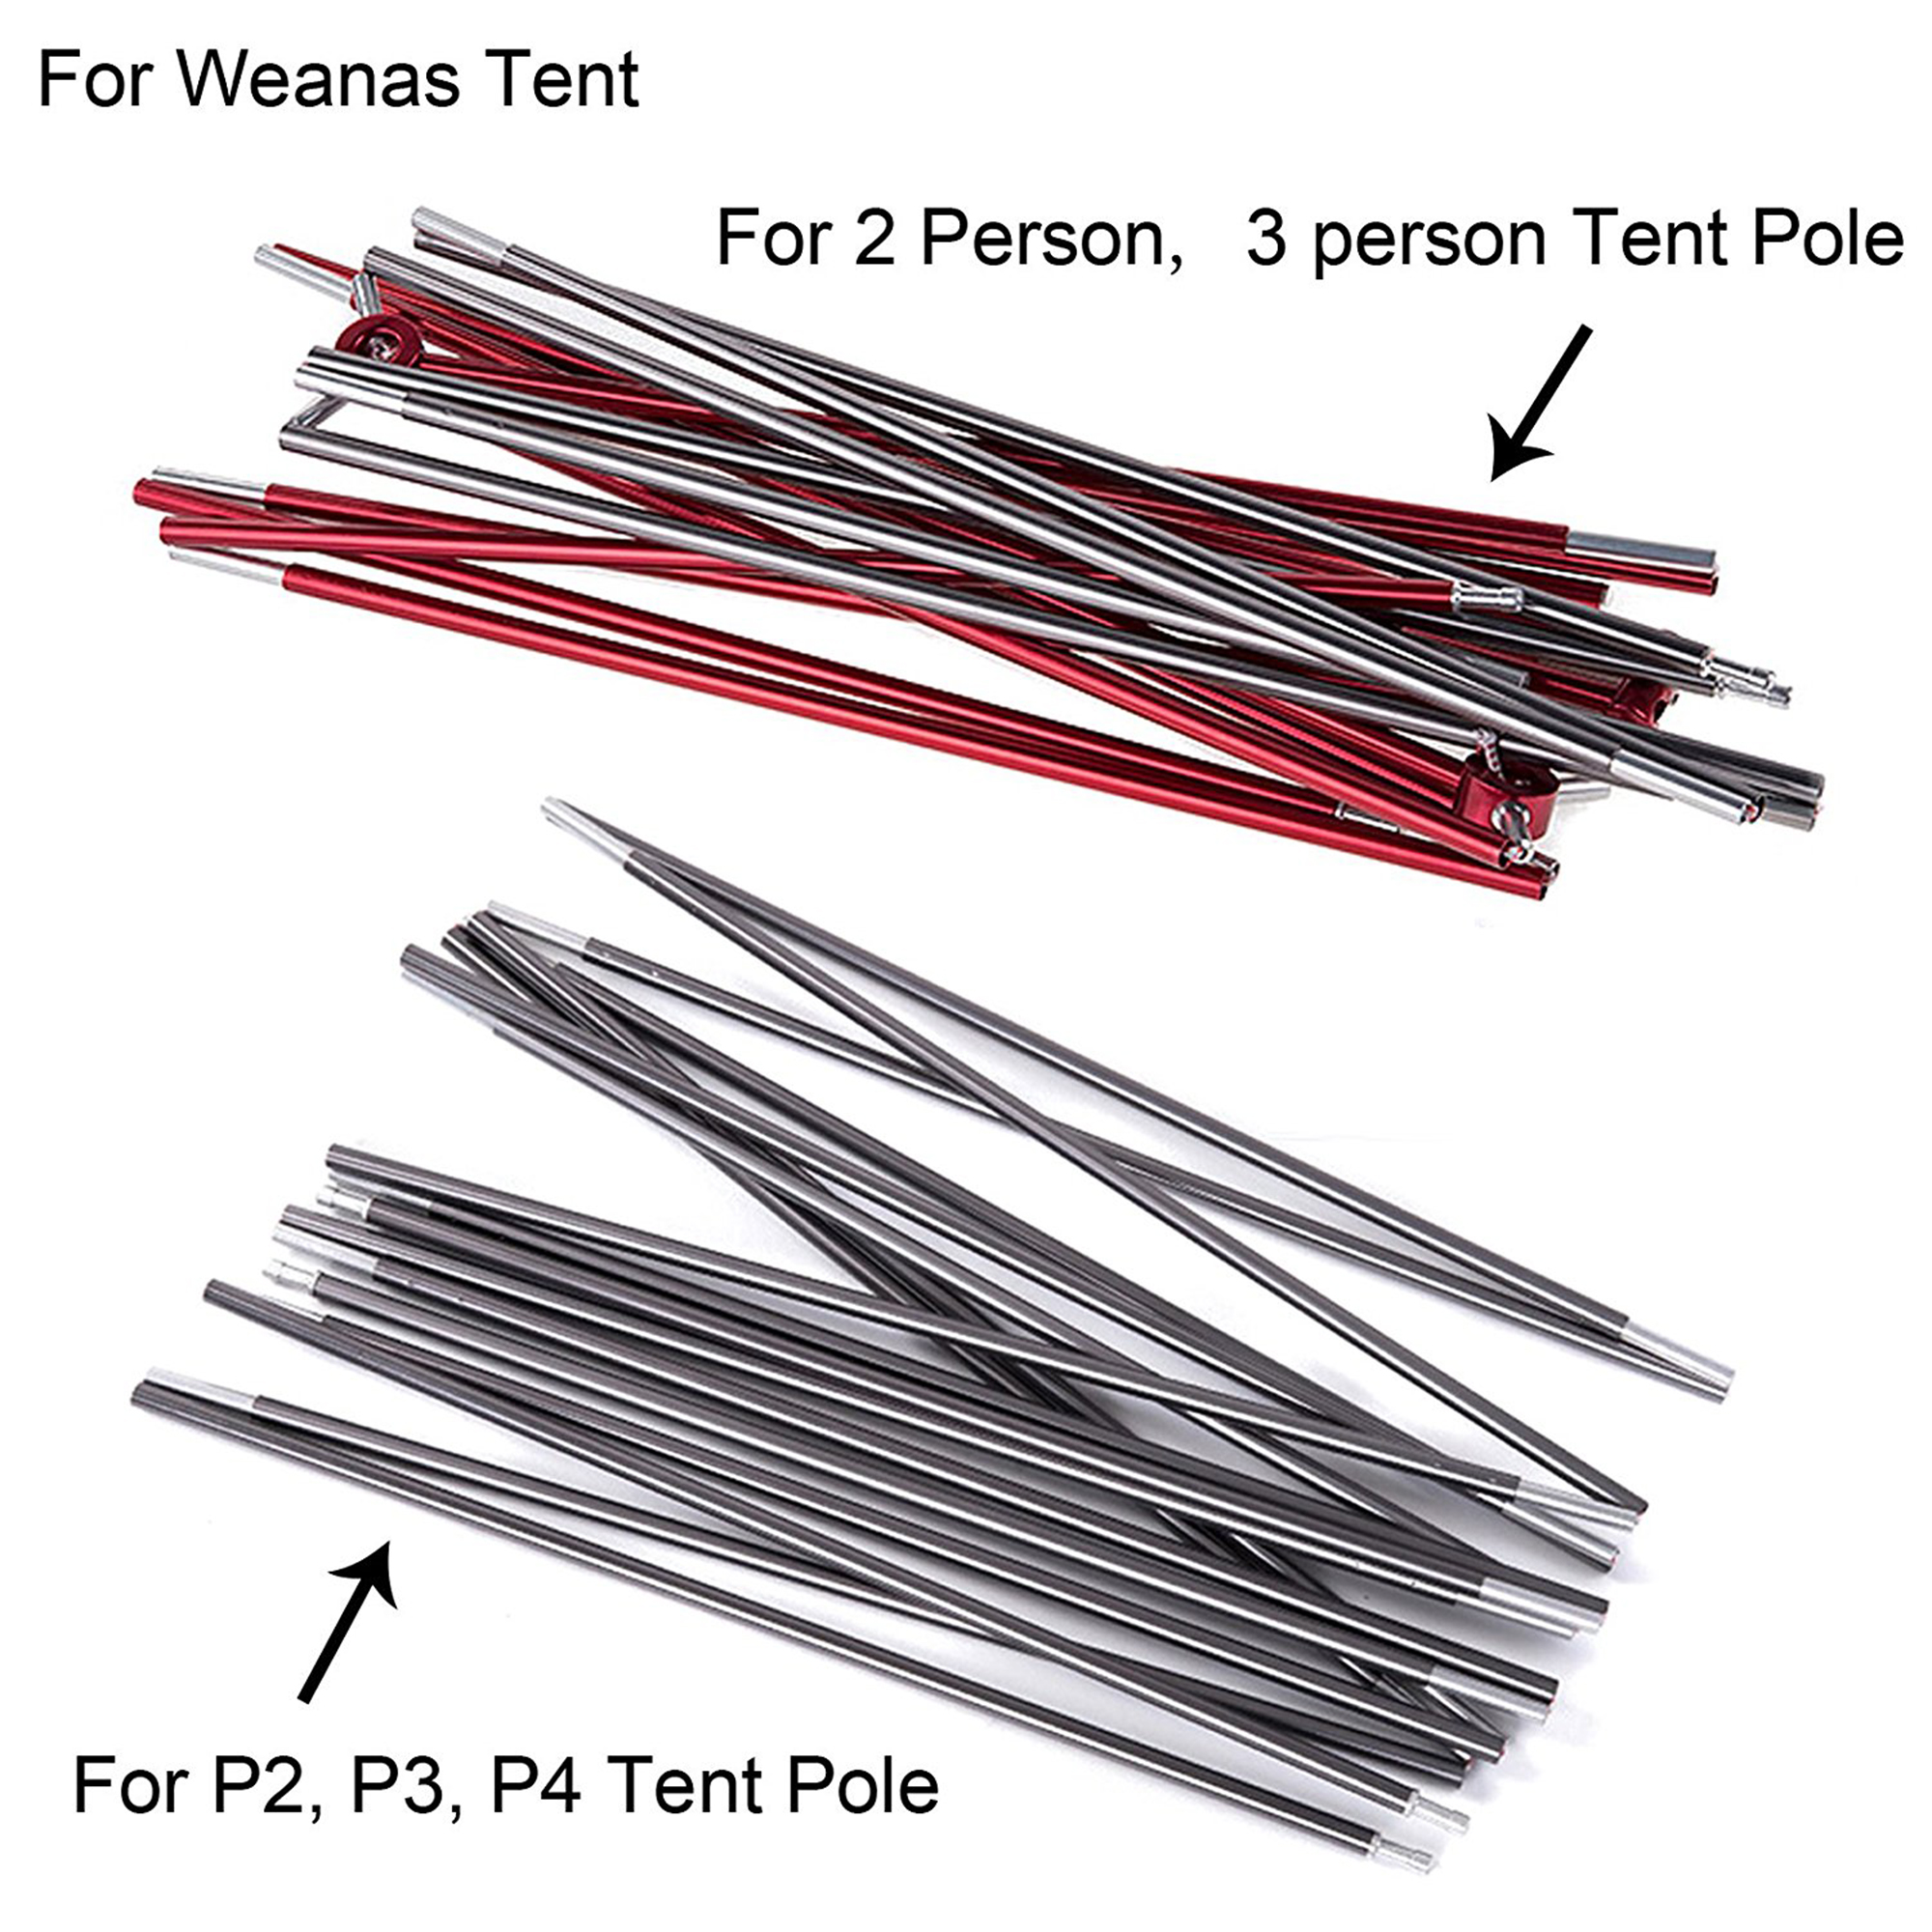 "WEANAS Aluminum Rod Tent Pole Replacement Accessories ( 12'2"" x 2 )"